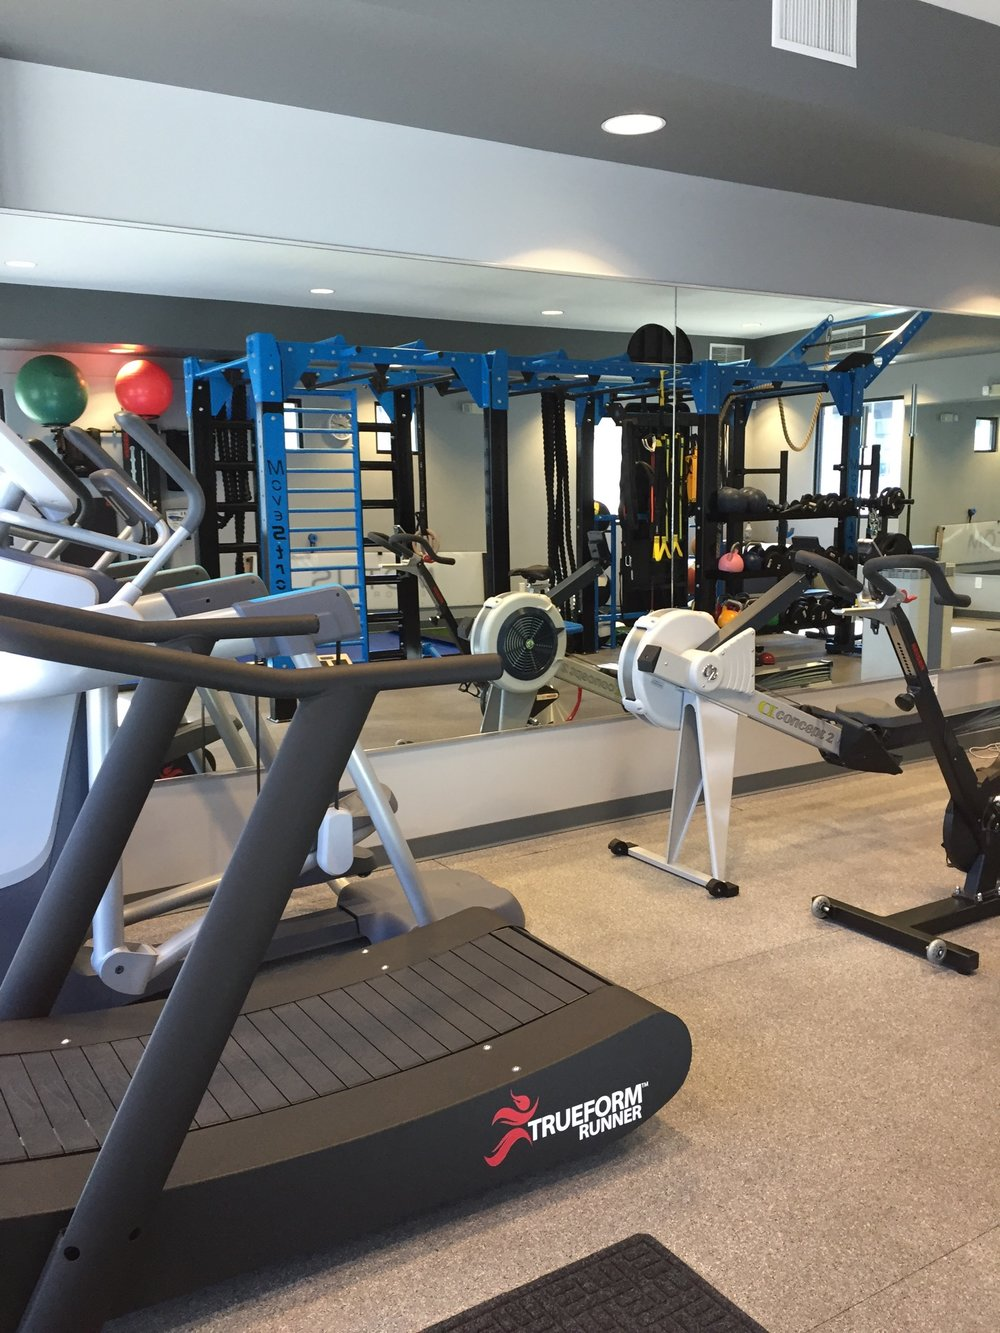 Cardio stations used with MoveStrong